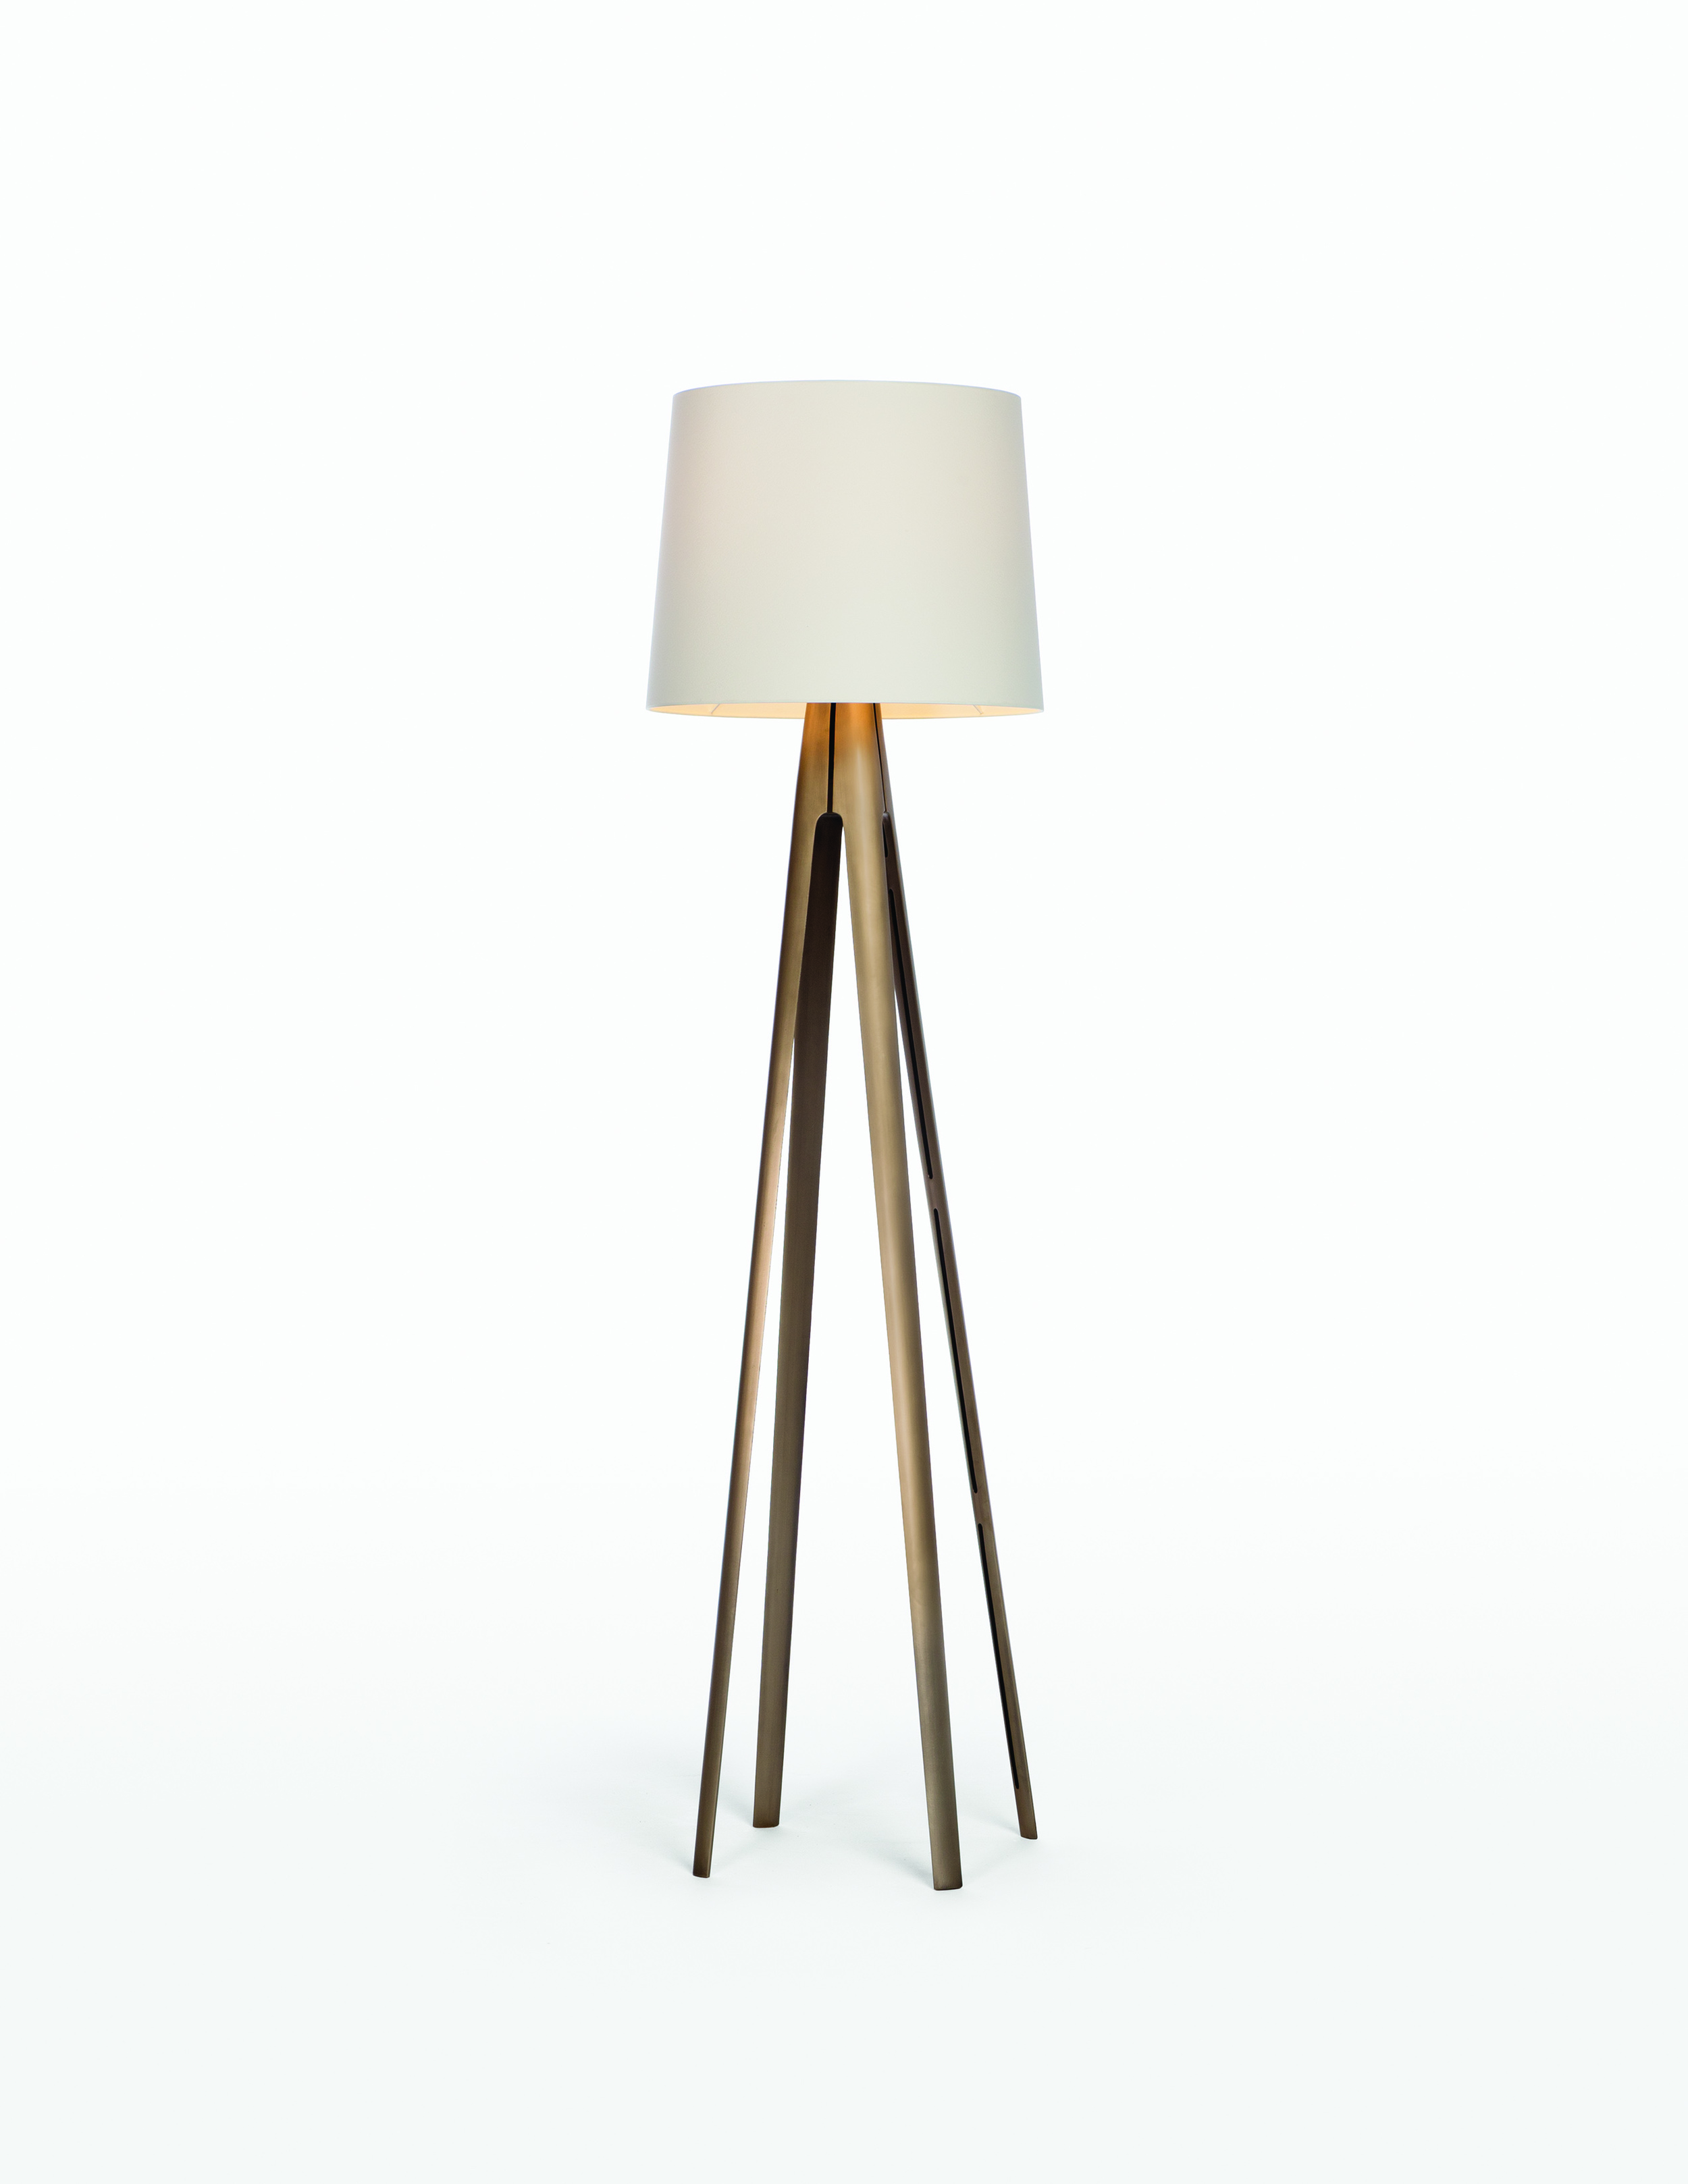 Compass Floor Lamp by Holly Hunt